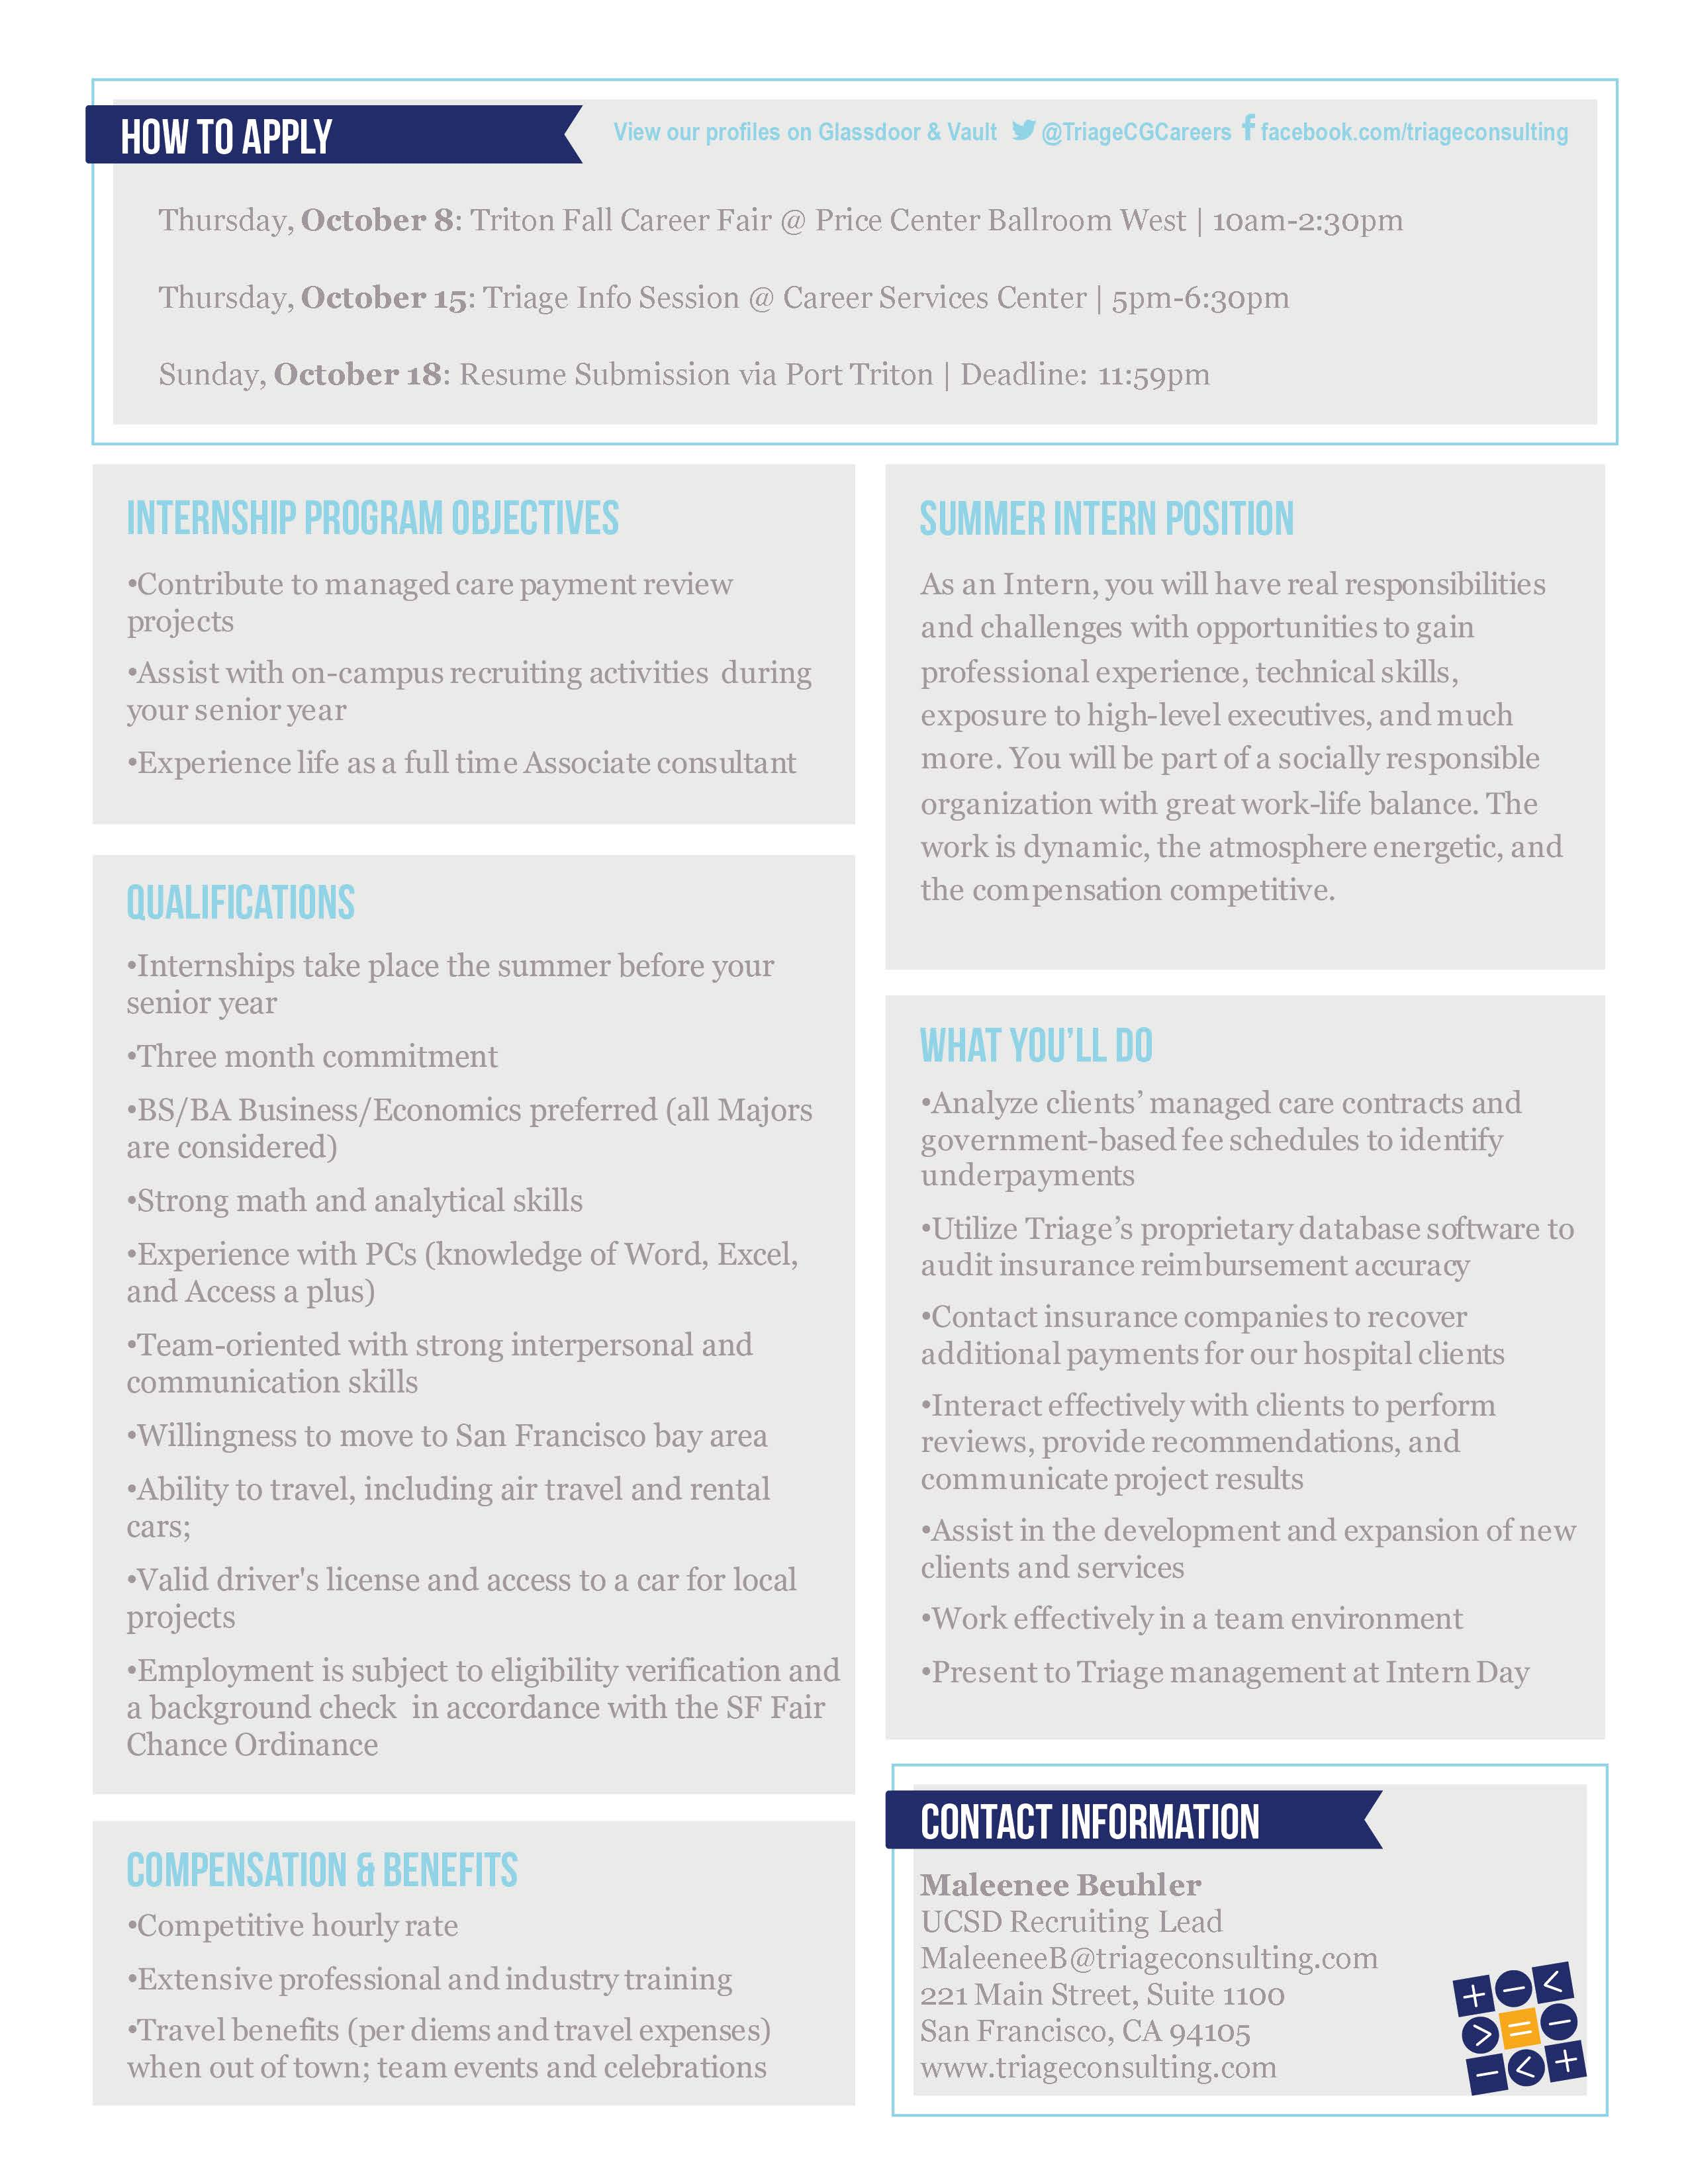 triage consulting group summer internship opportunity connect triage consulting group summer internship page 2